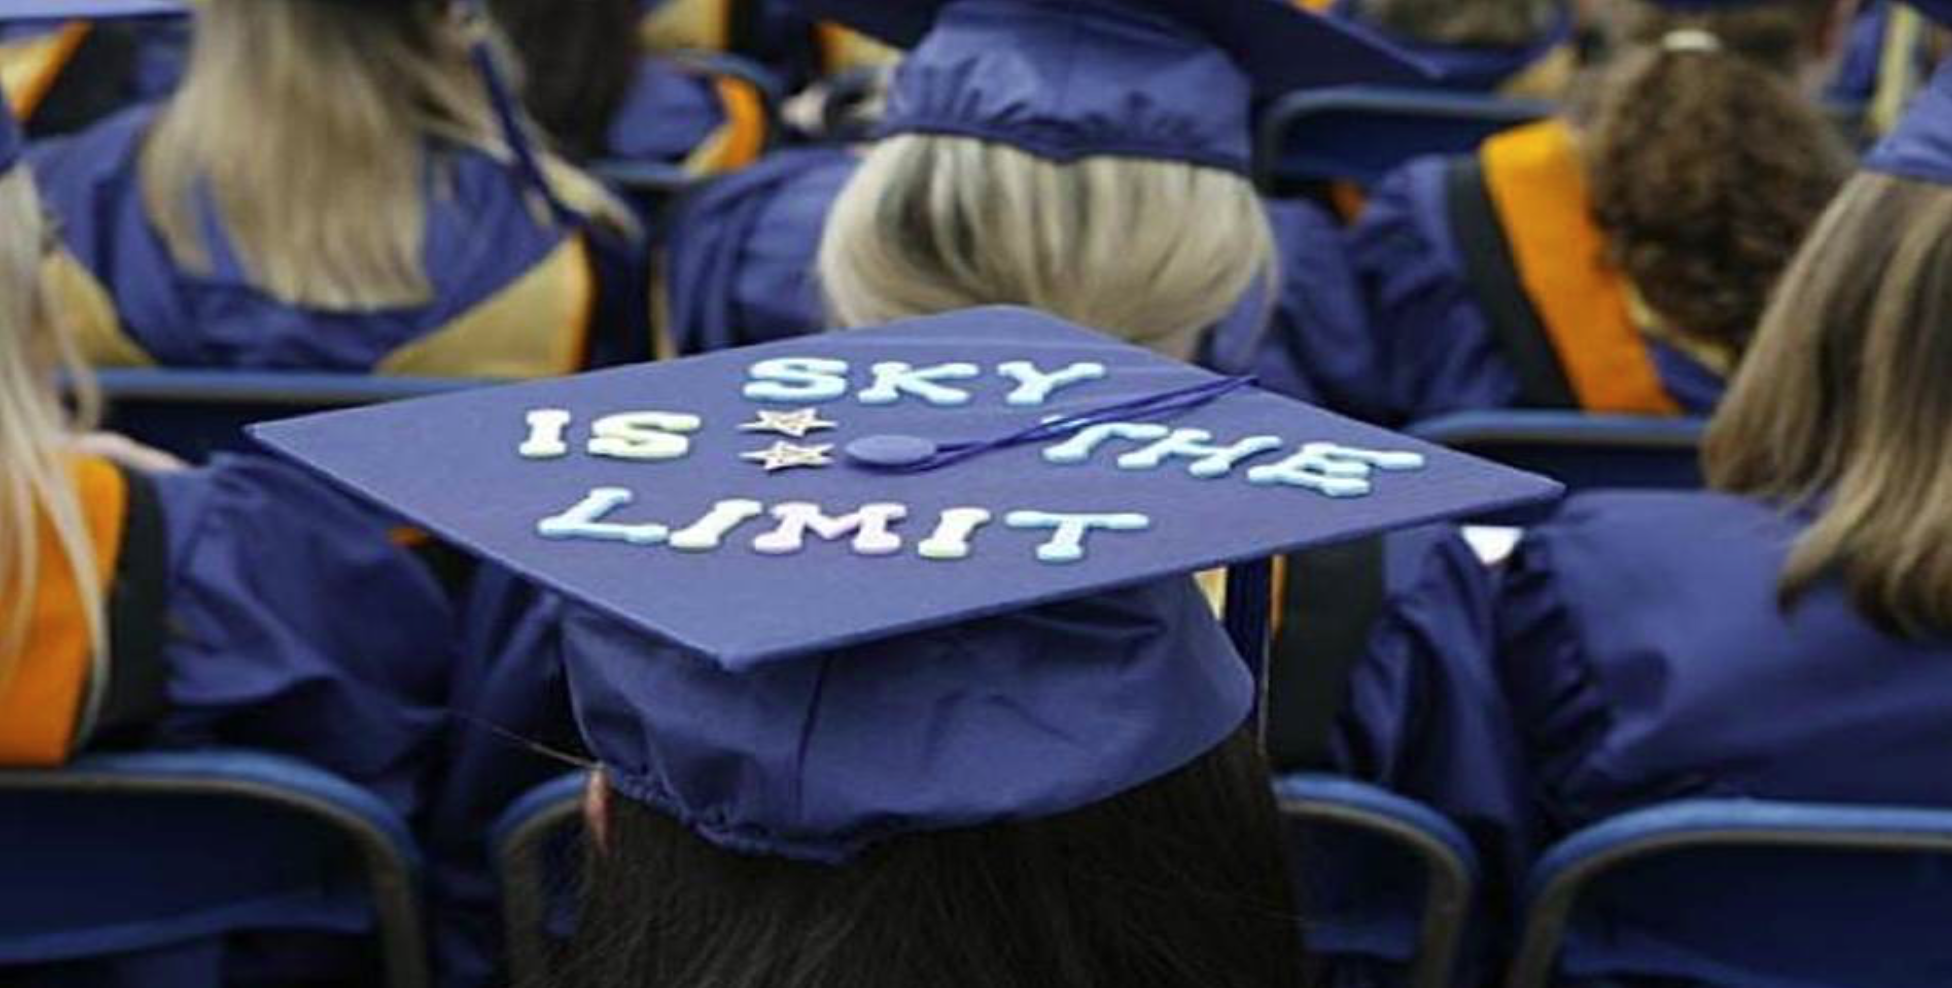 sky is the limit graudation hat viewed within a crowd of graduates